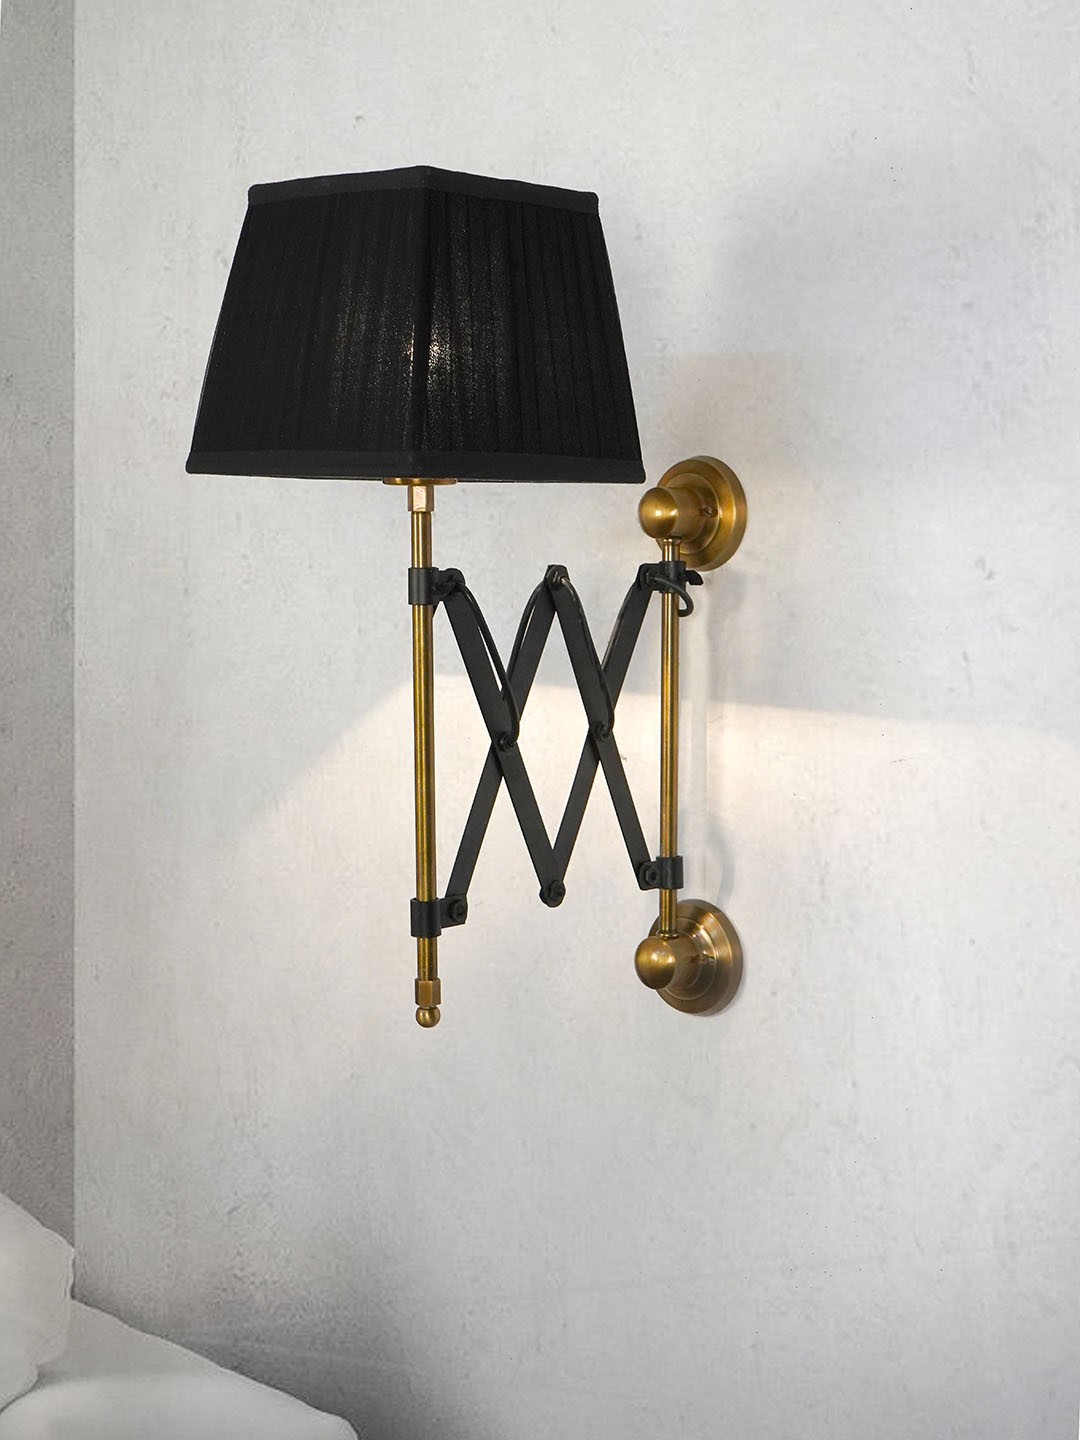 Scissor Accordion Arm wall Sconce with Square Black Pleated Fabric Shade